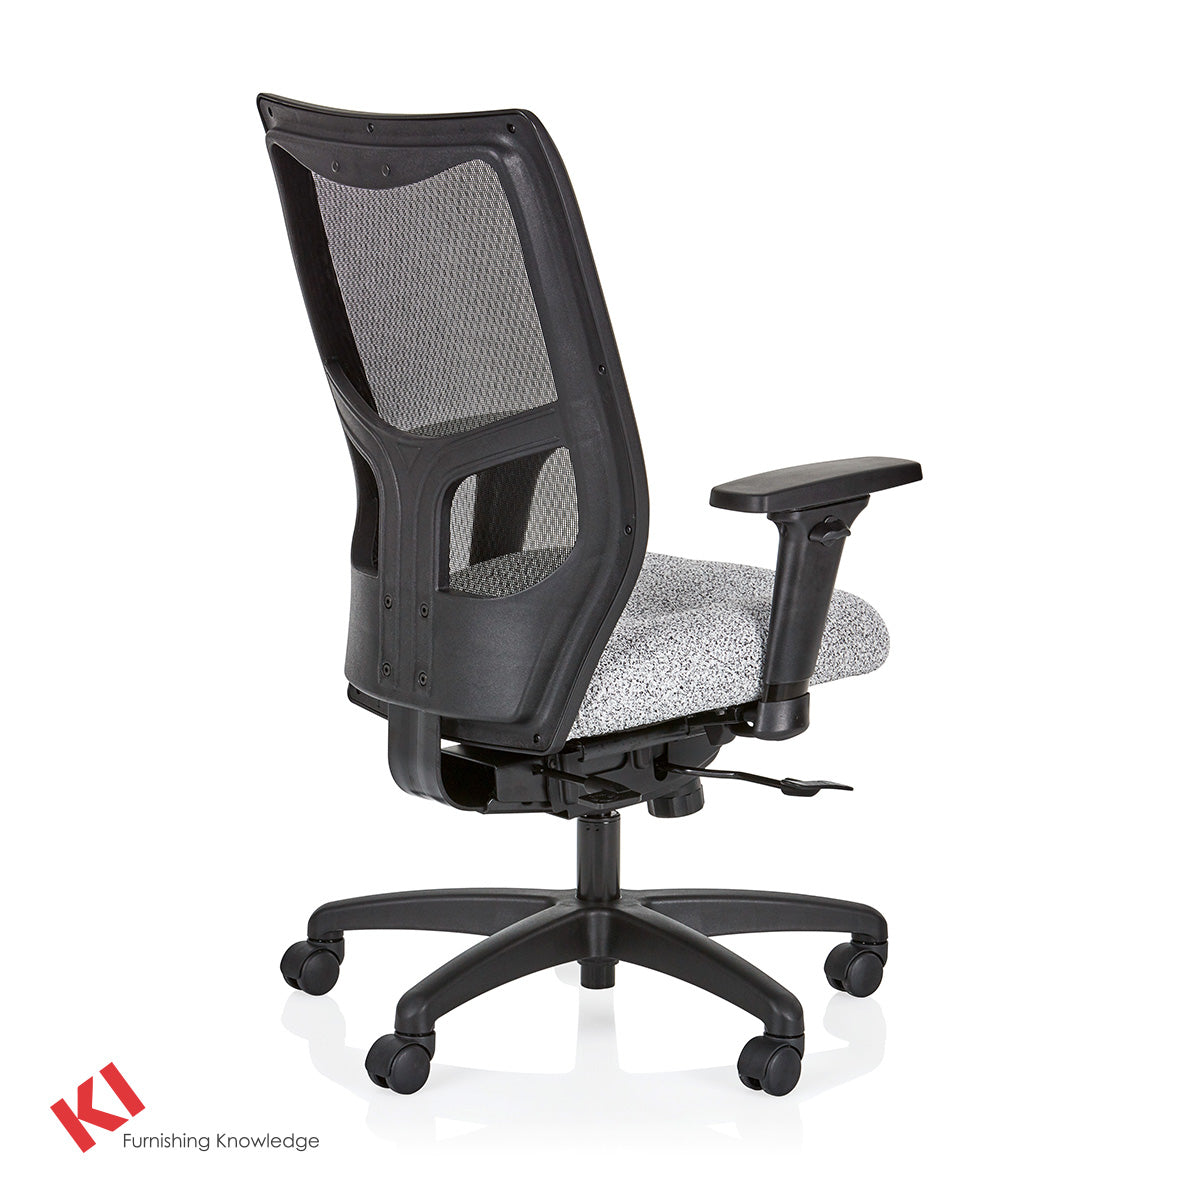 KI Impress Ultra Mid Back Task Chair